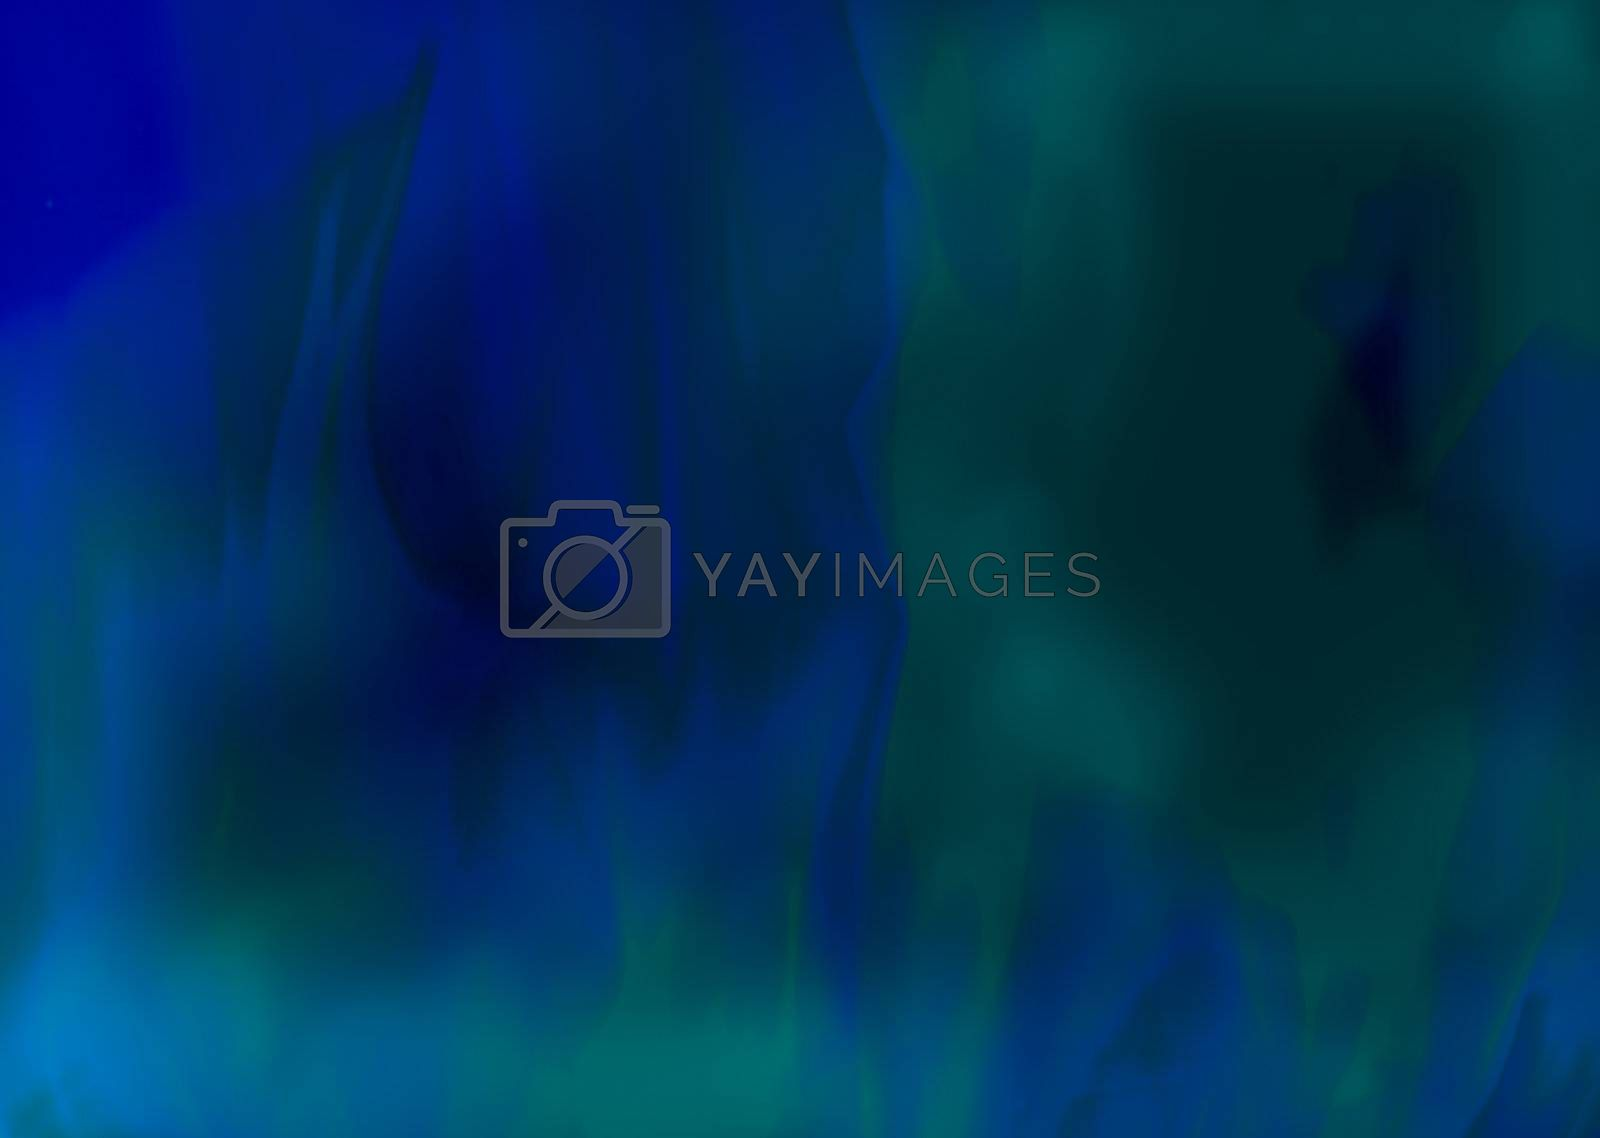 Smokey Blue Green Flames of Fire textured Background Design